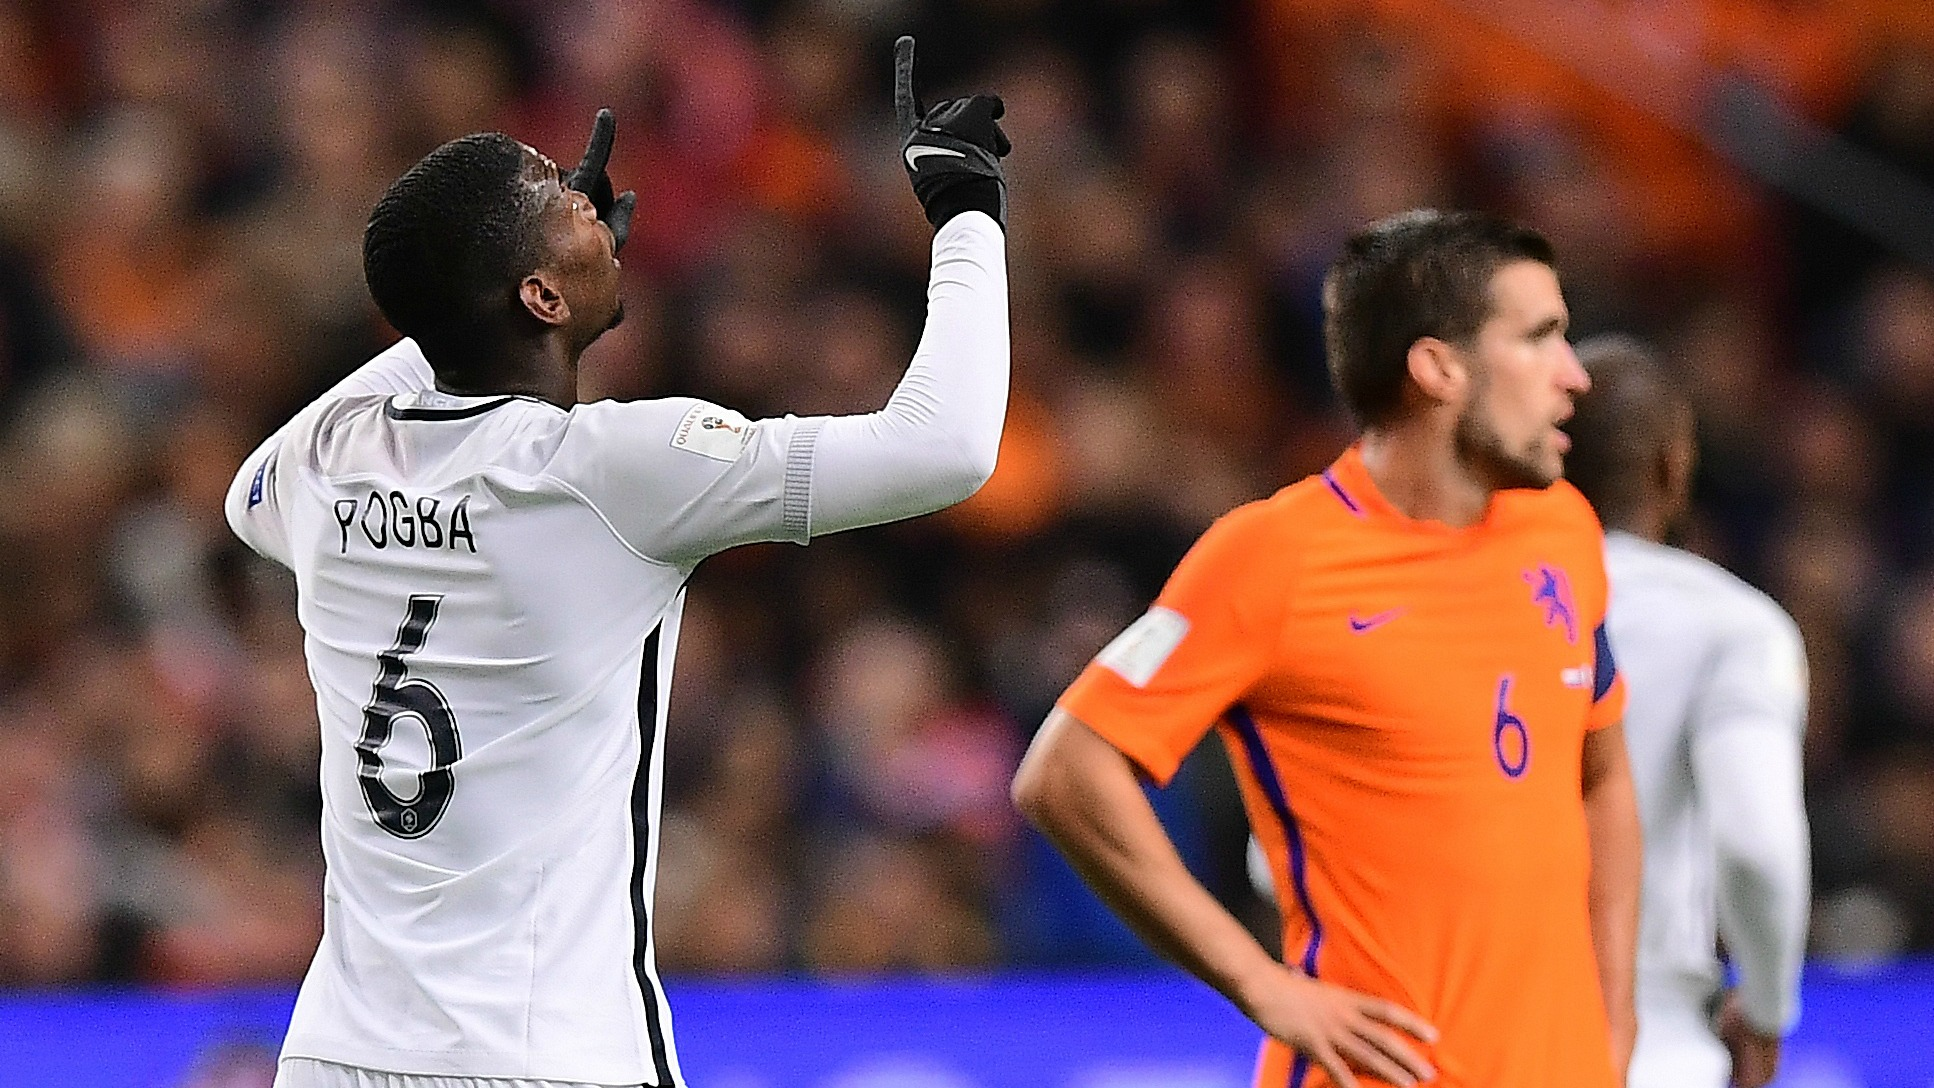 Watch Paul Pogba score an absolute missile against the Netherlands